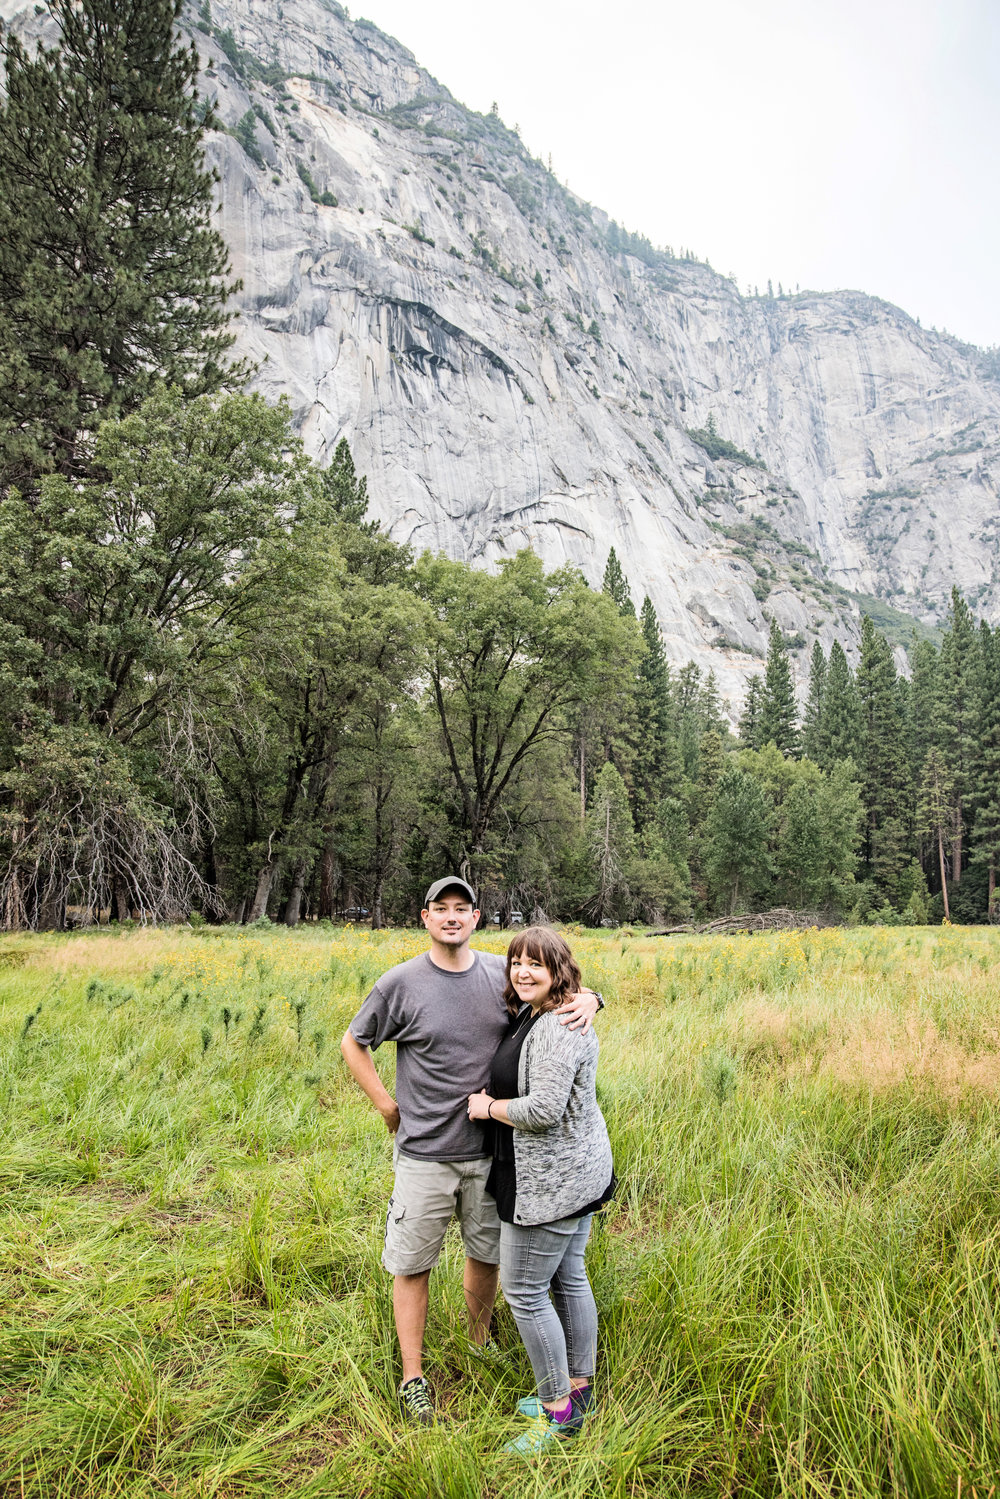 Yosemite-Destination-Engagement-Session-2017-Rotella-Photography-37.jpg